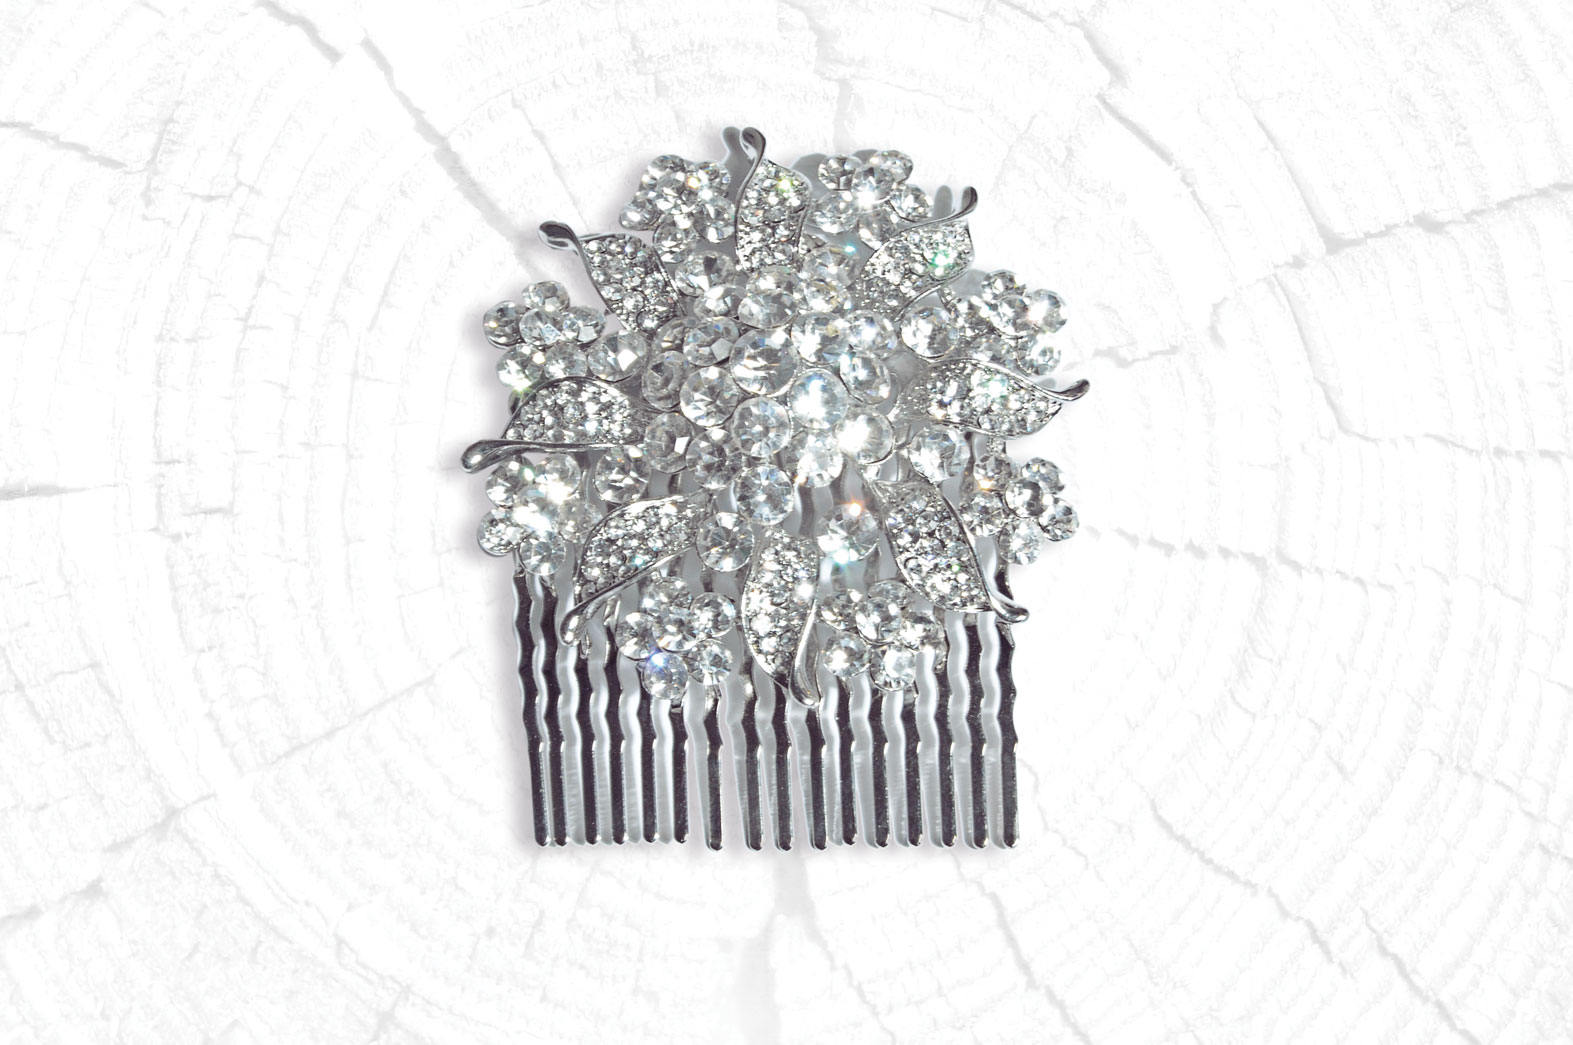 Gorgeous rhodium finished floral diamante hair comb